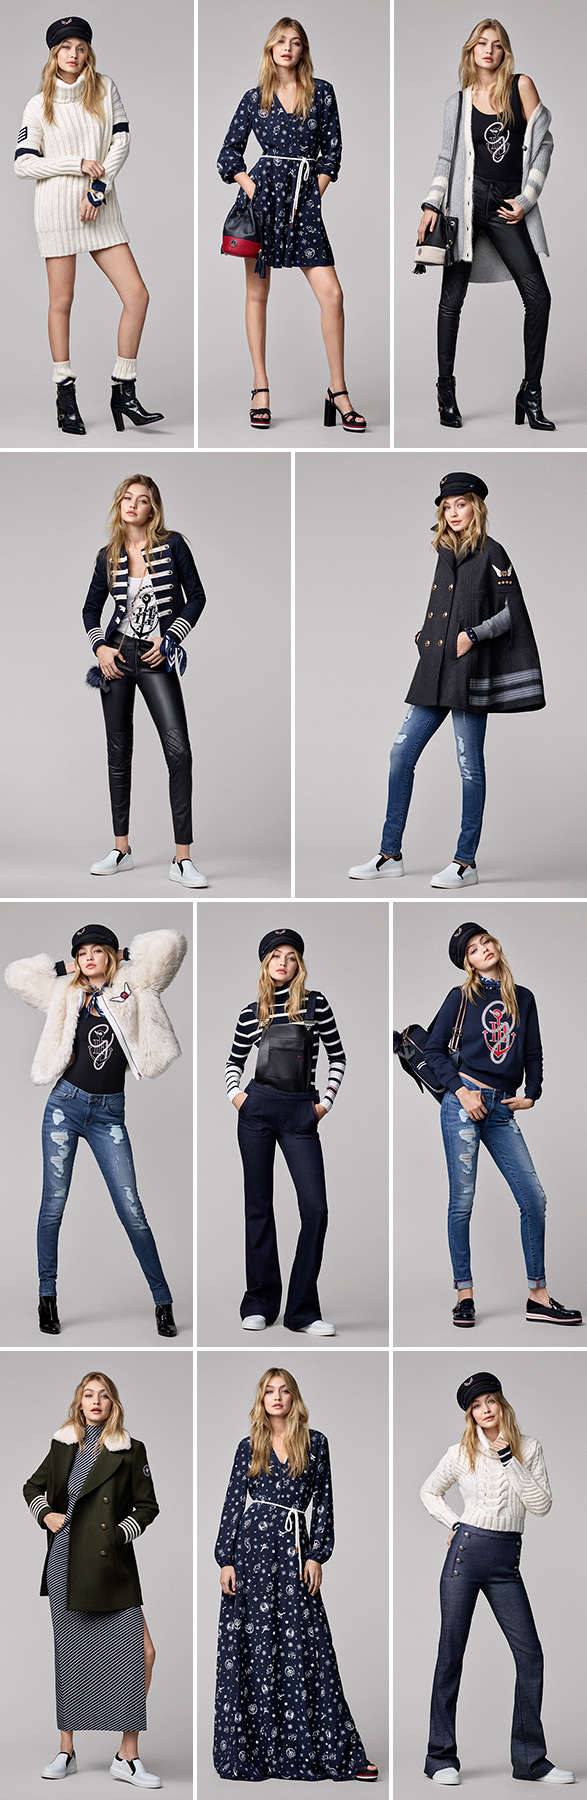 gigi-hadid-tommy-LOOKBOOK